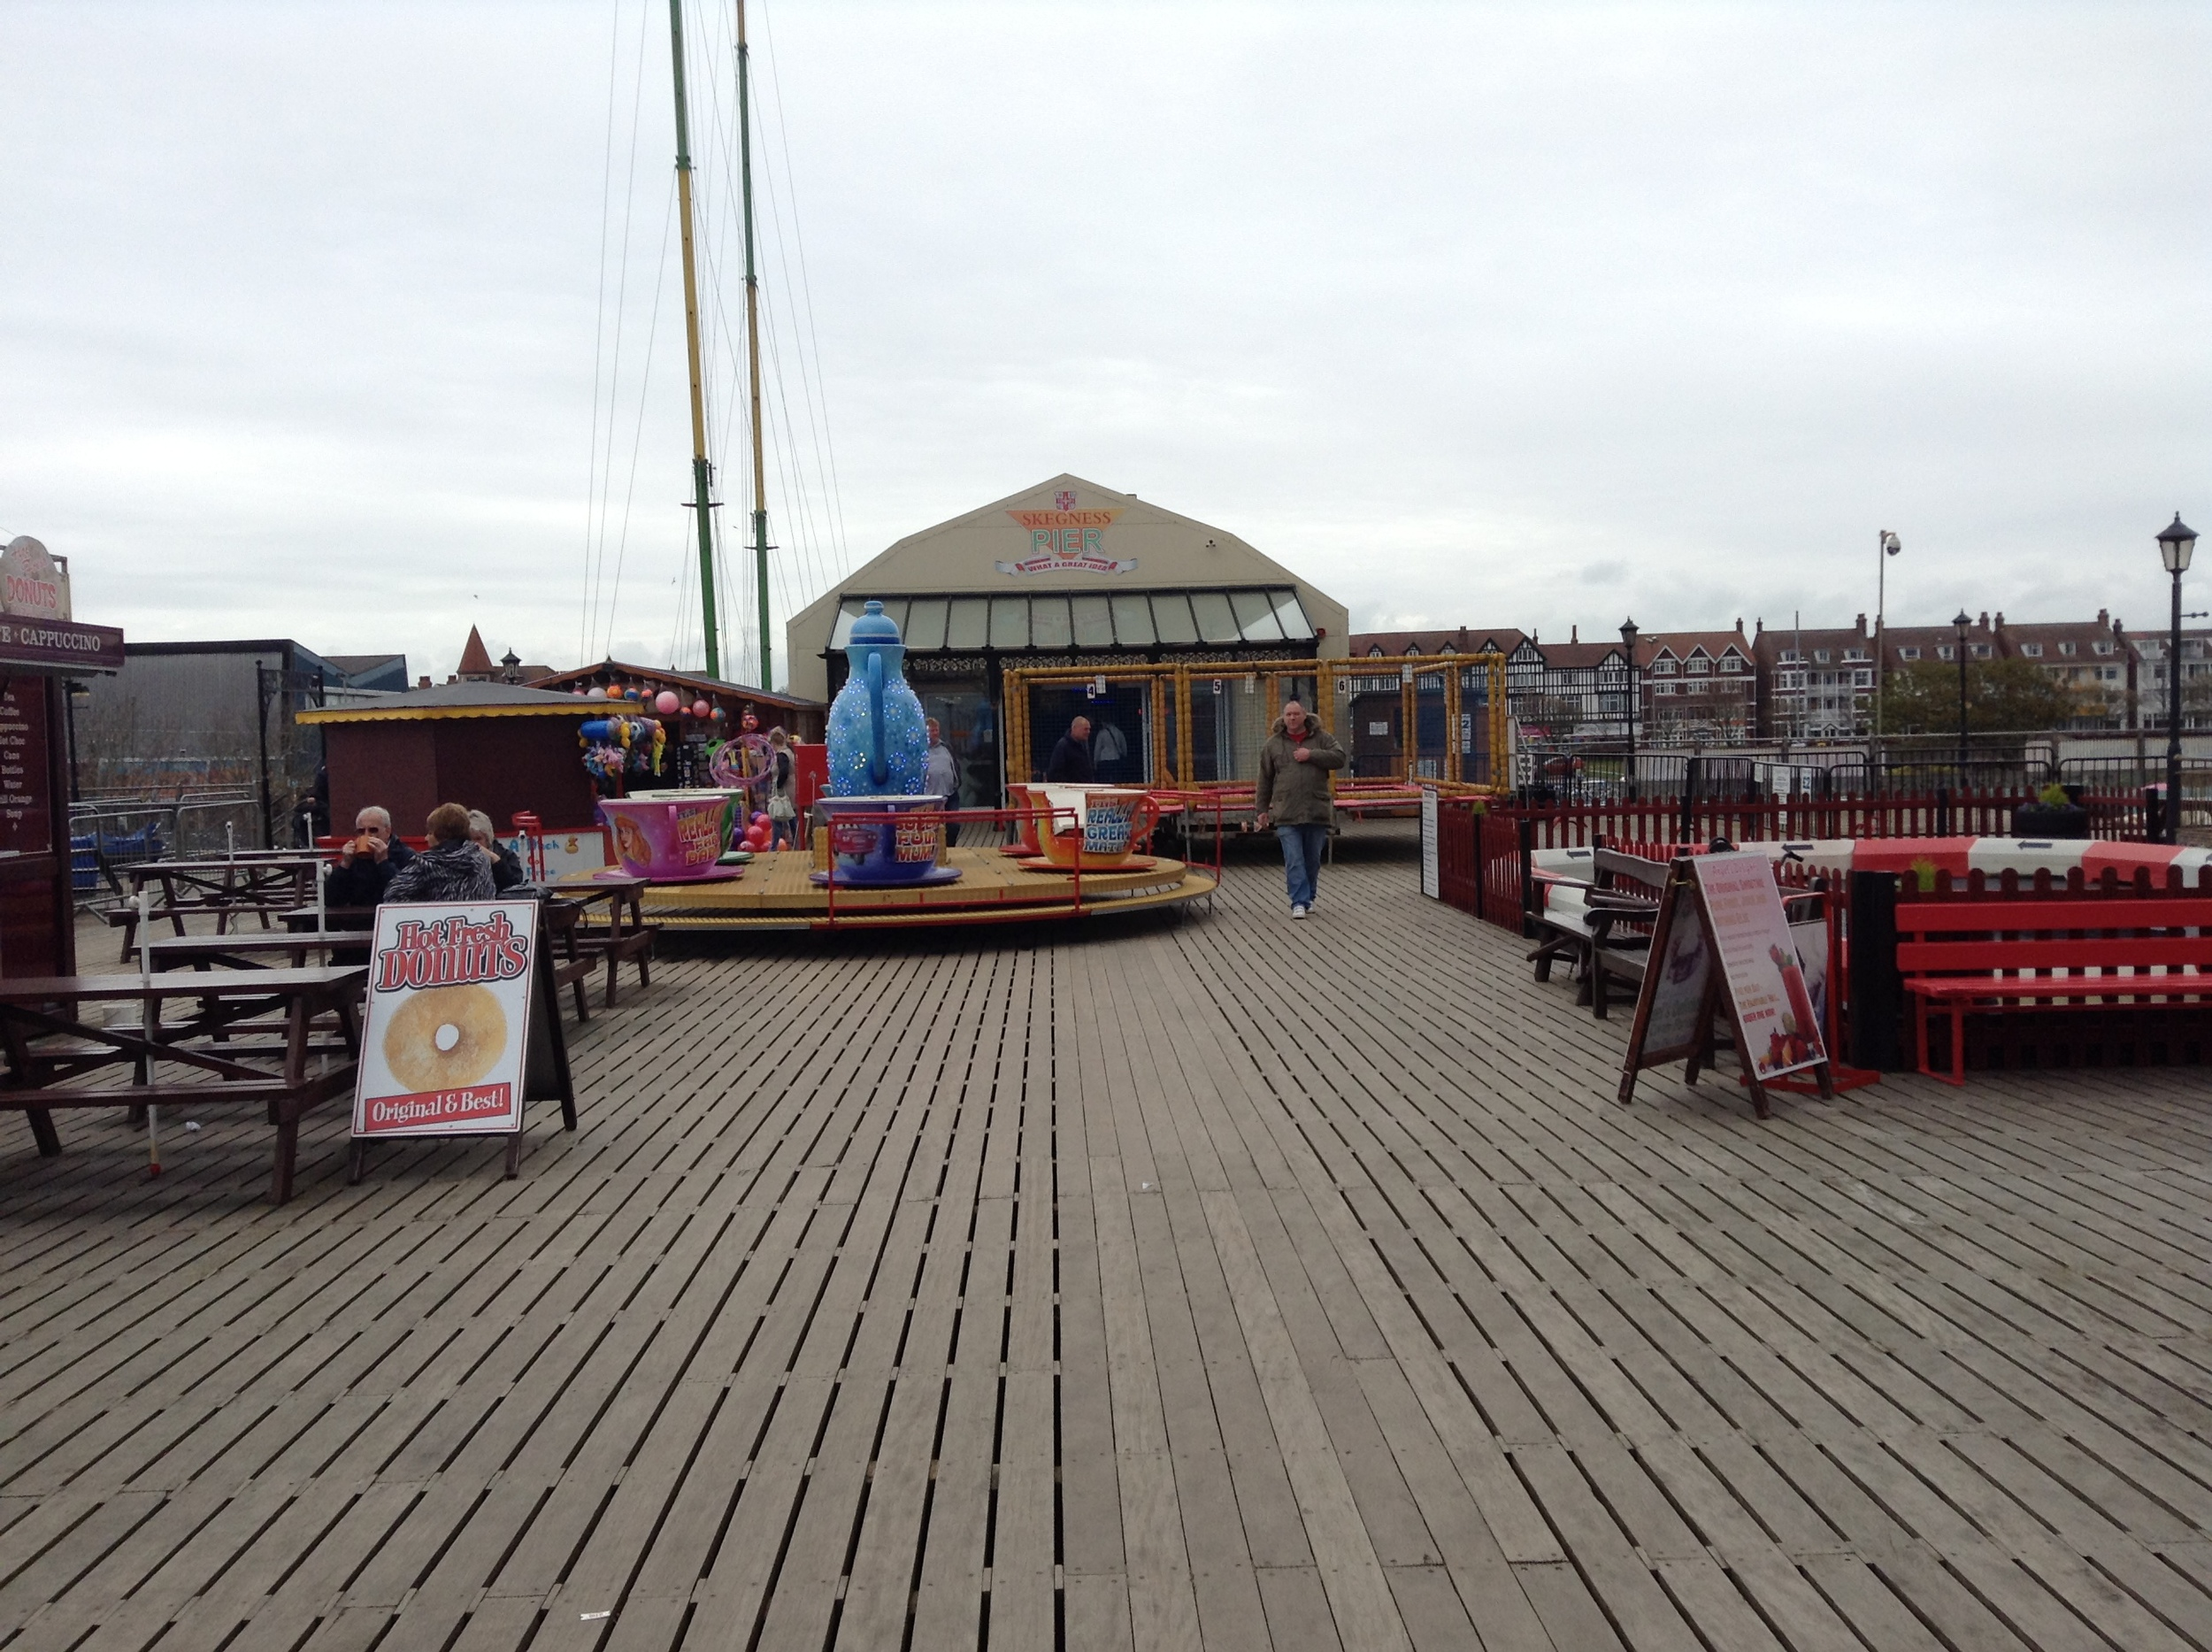 Amusements on Skegness Pier.